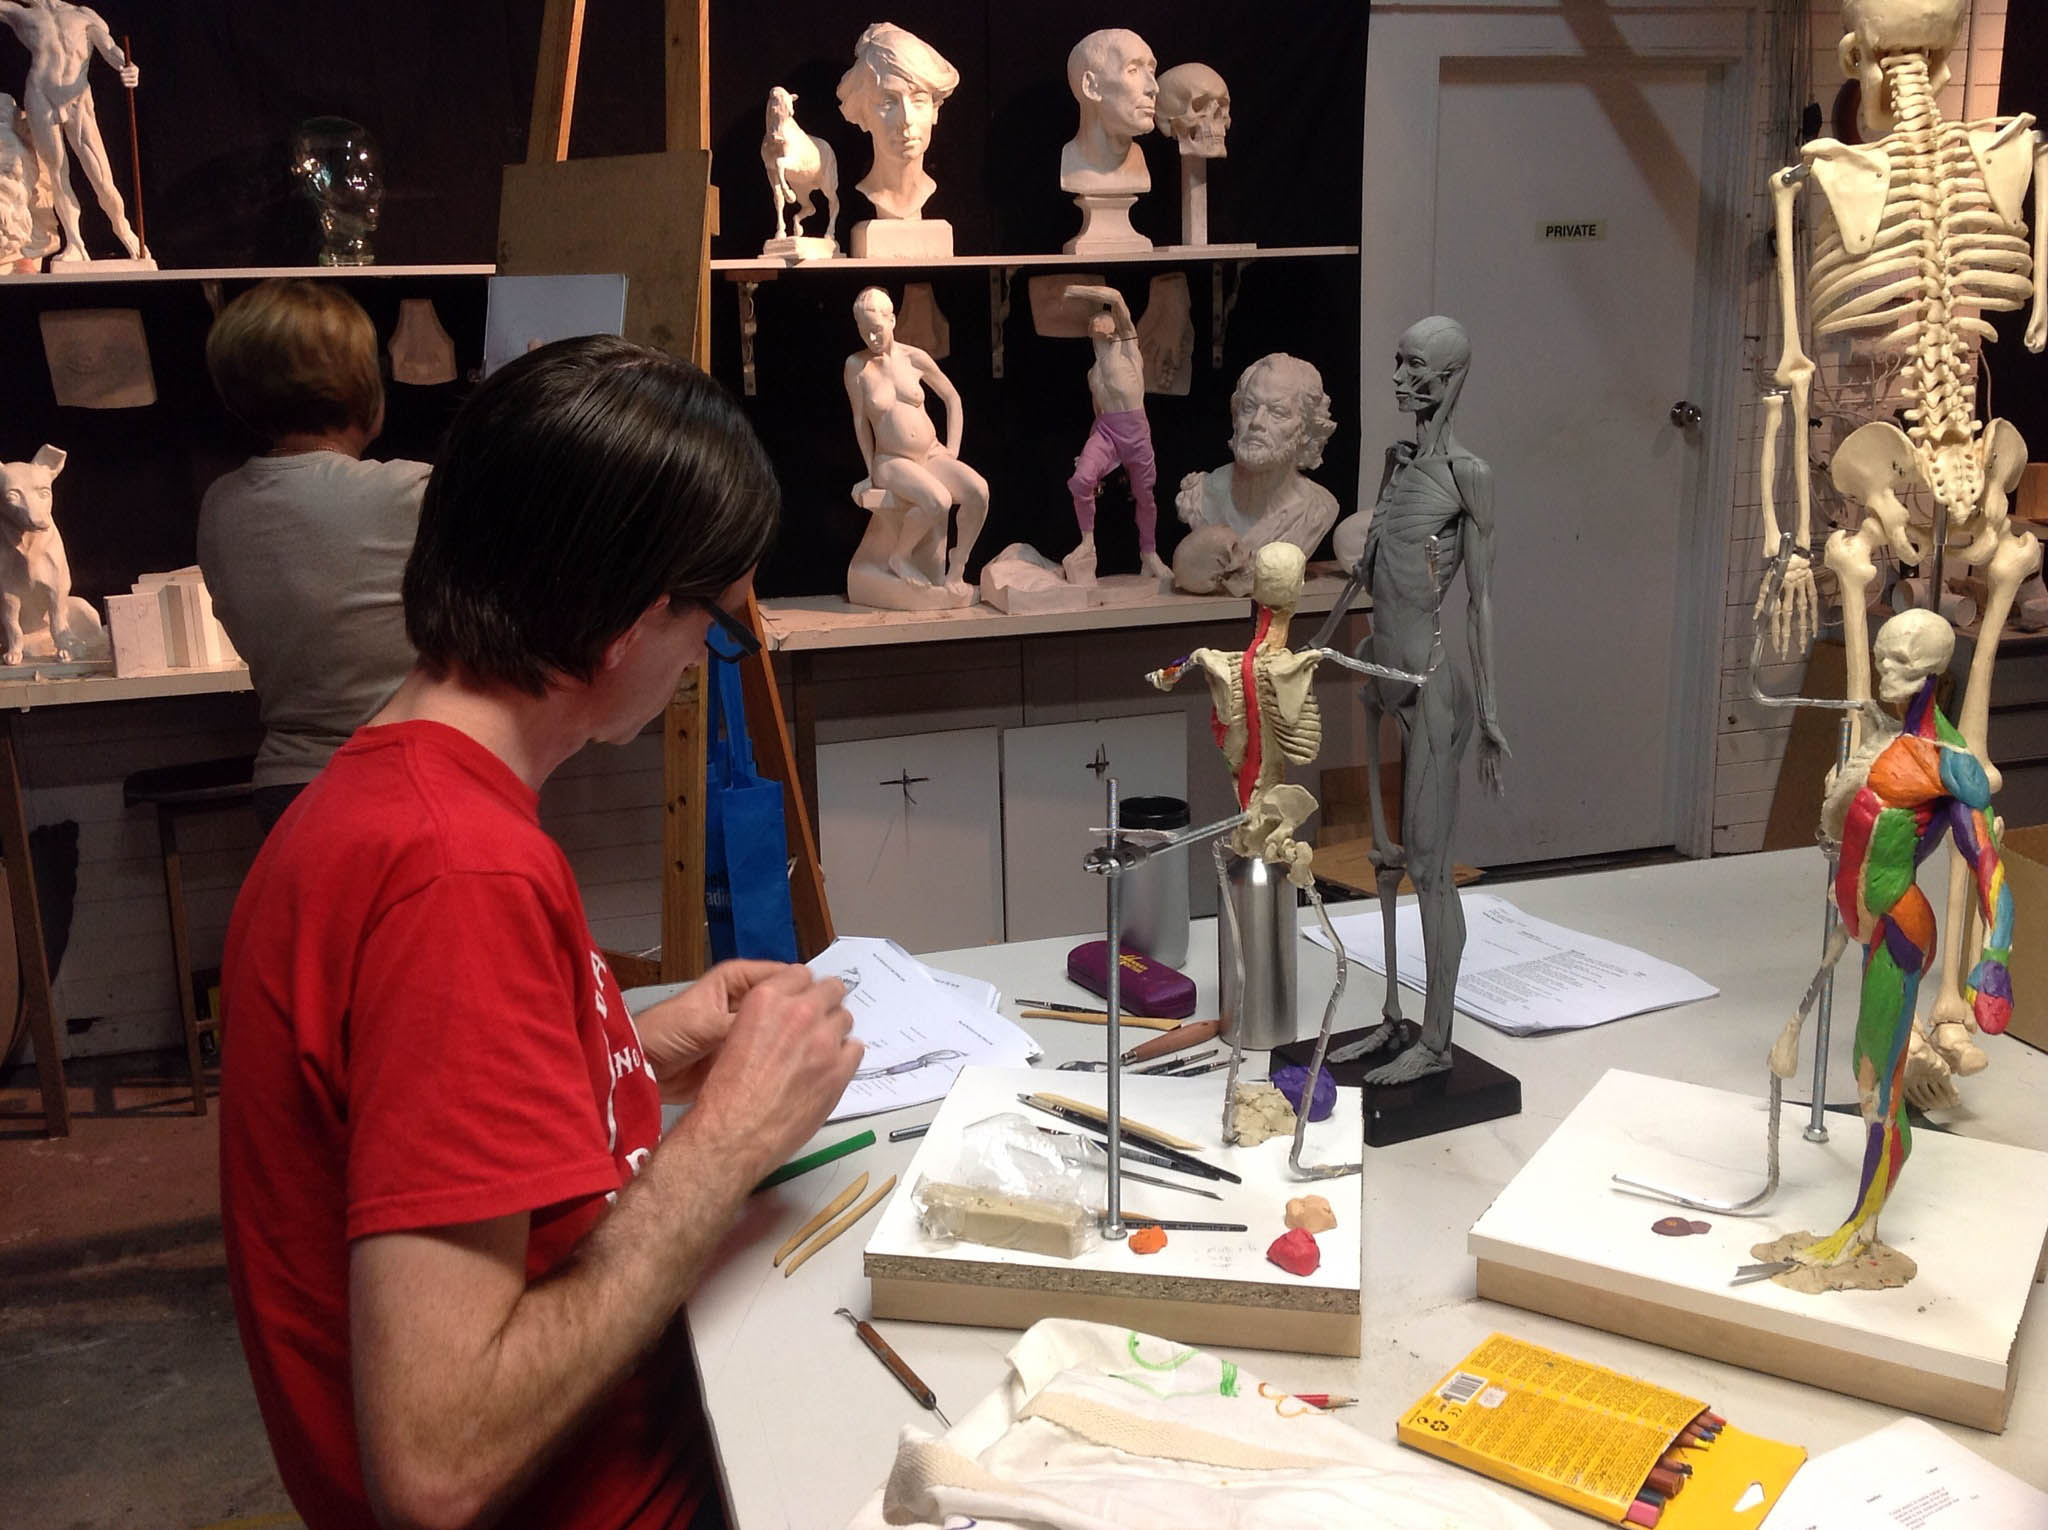 A student studying anatomy in Scott's class at the Atelier Art Classes, Brisbane studio.